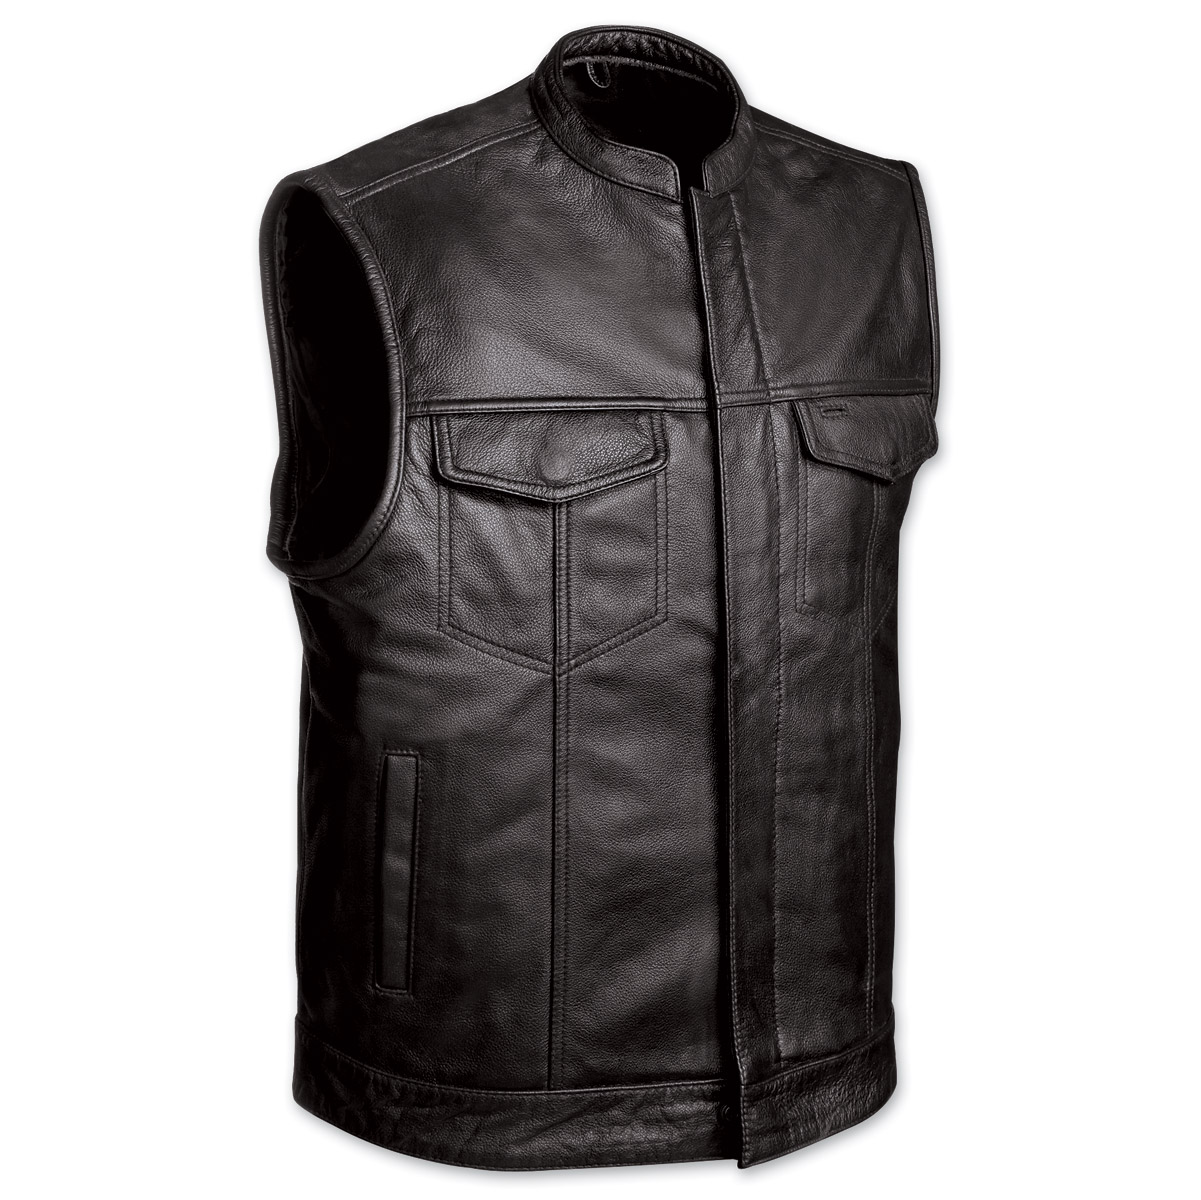 The quality behind the leather vest